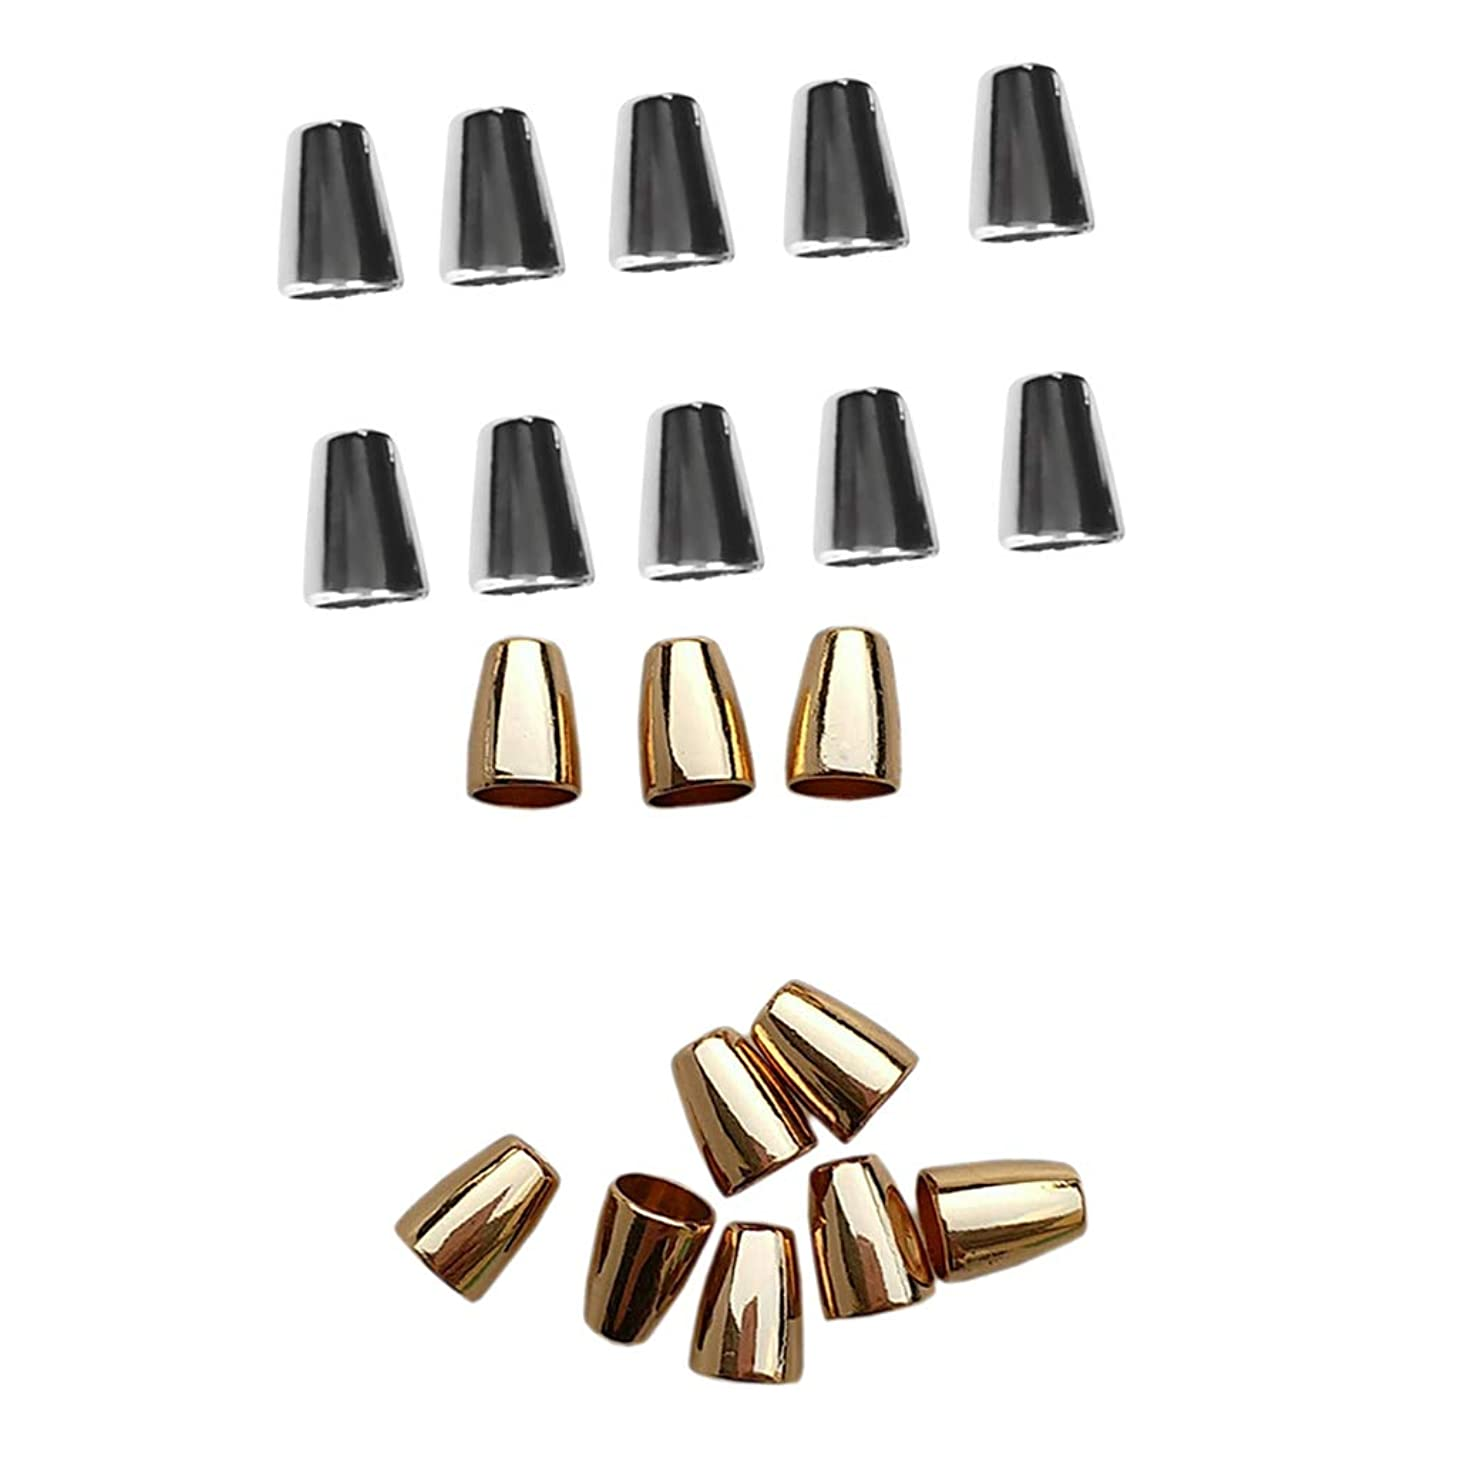 Prettyia 20 Pieces Bell Shaped Cord Fastener Single Hole Cord Lock Stoppers Dia 4mm Gold Silver